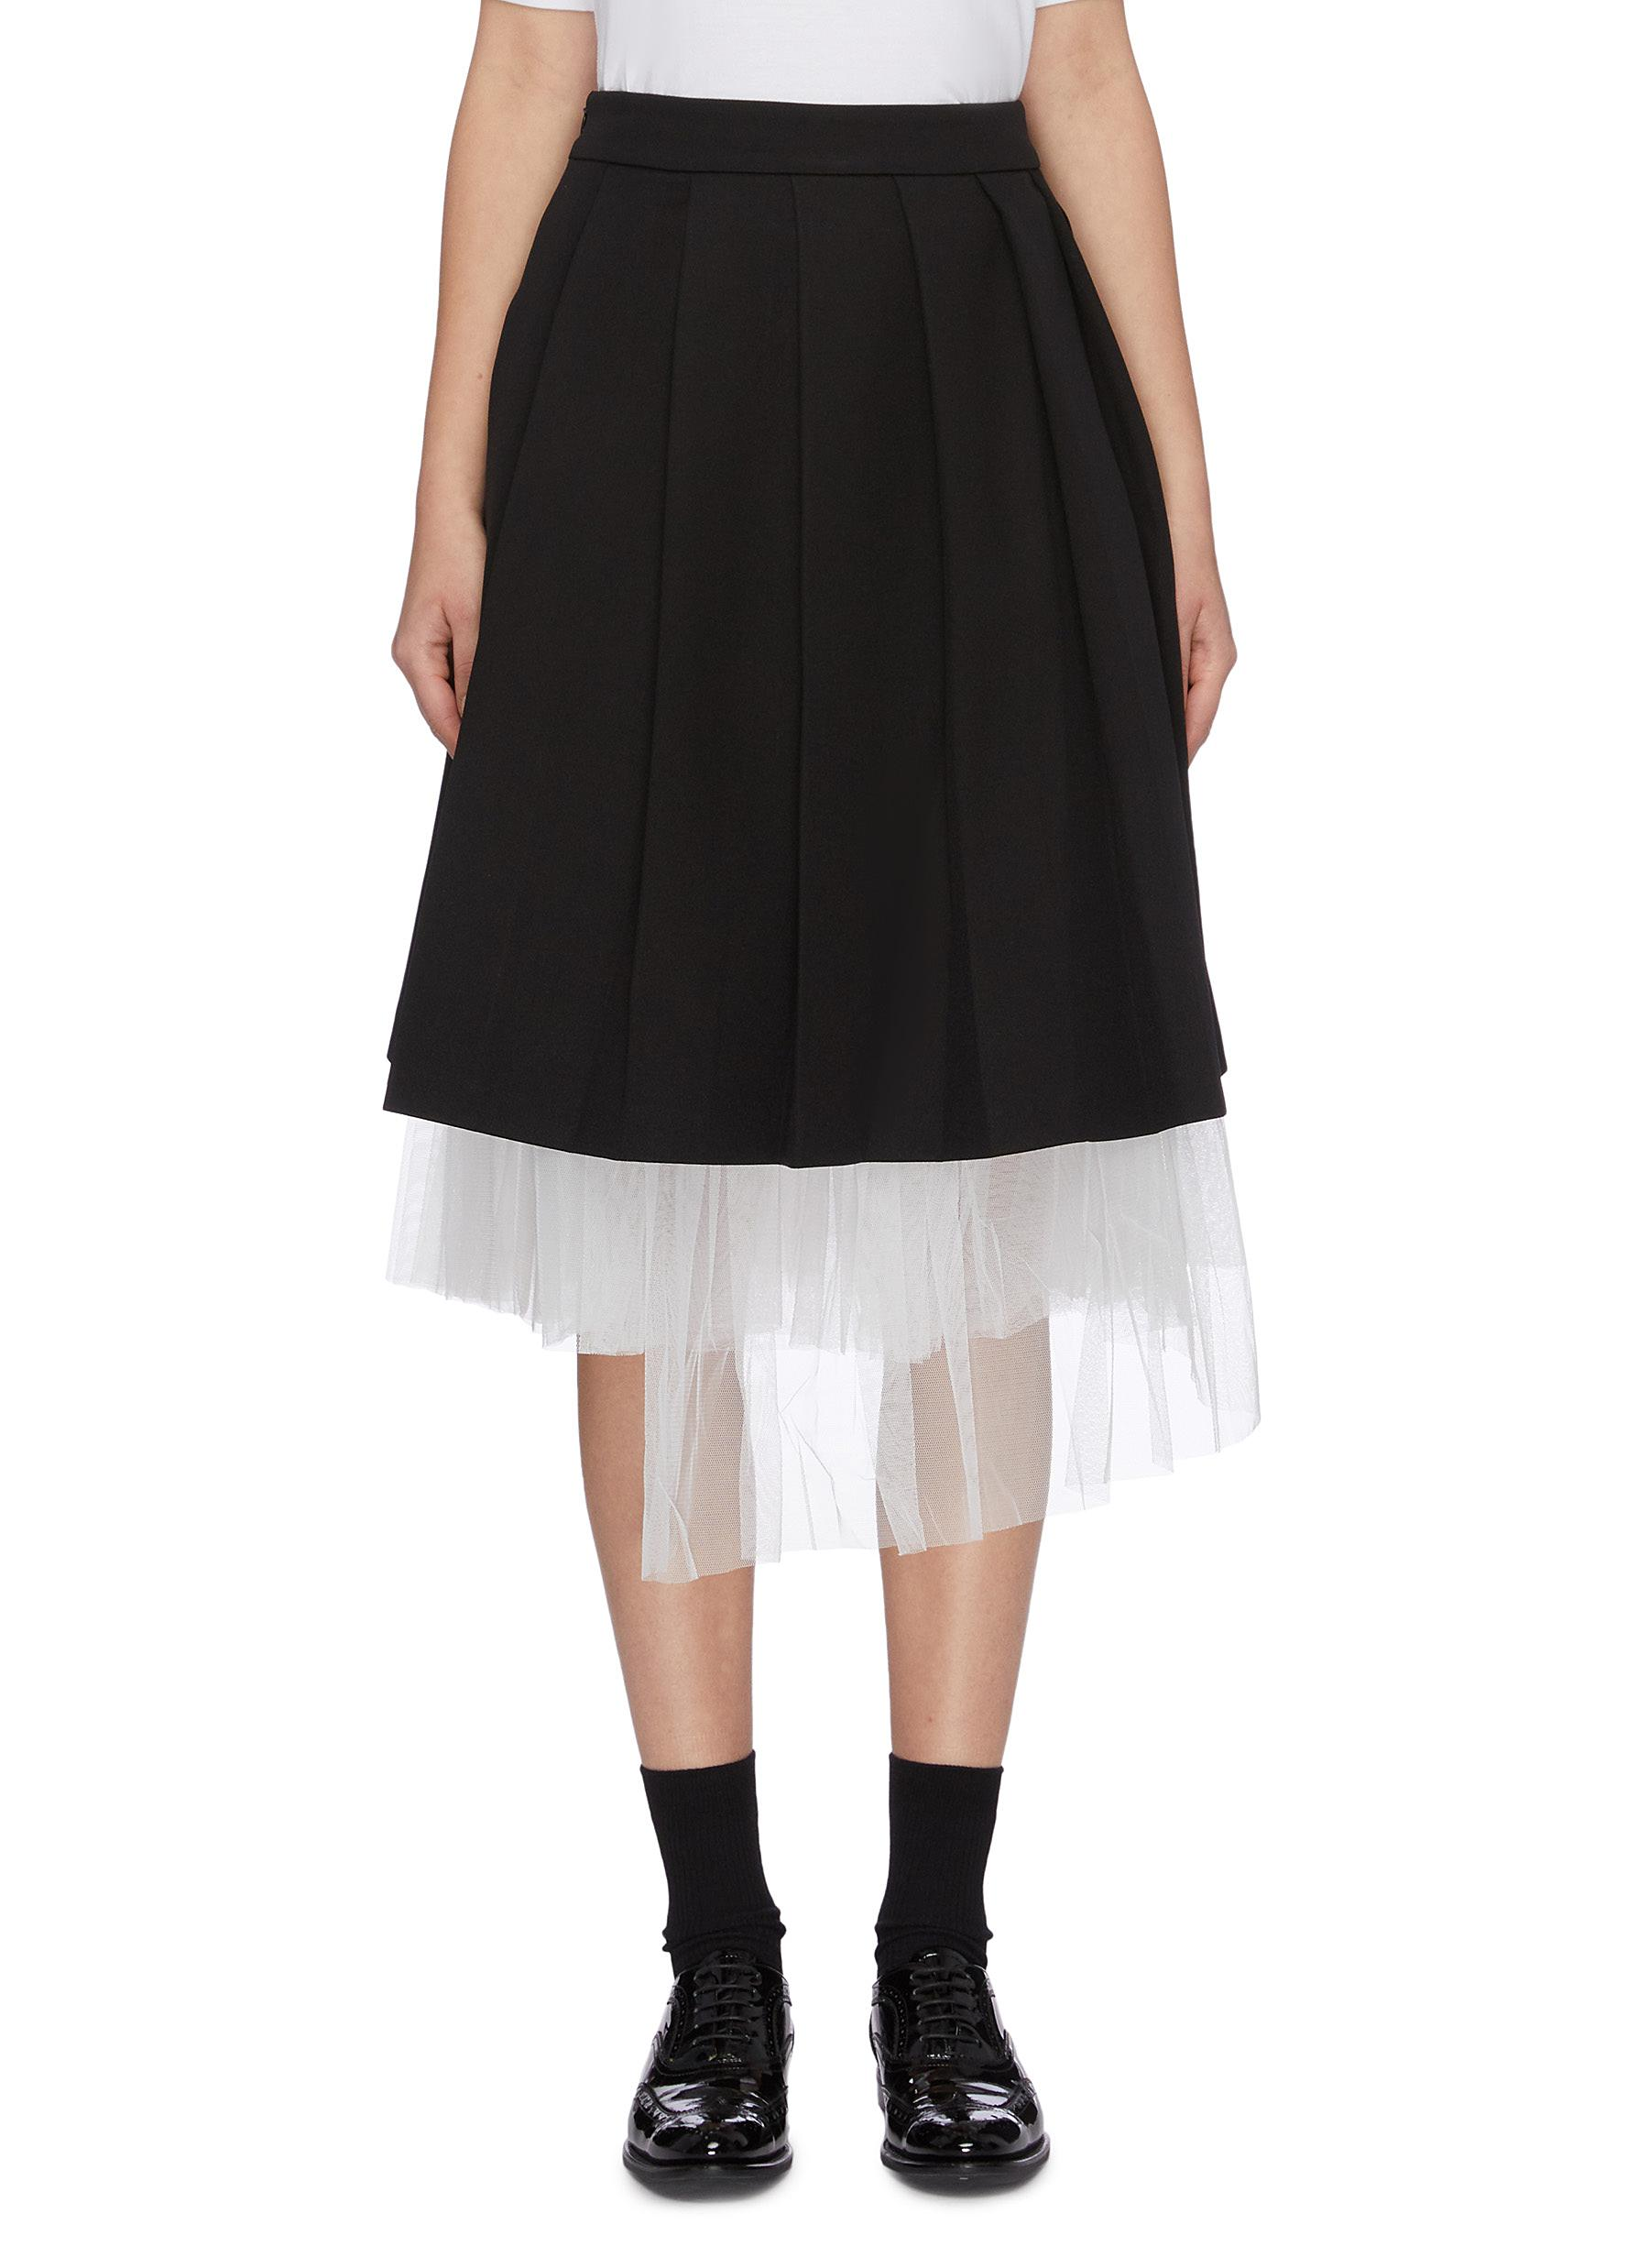 Tulle underlay pleated skirt by Shushu/Tong